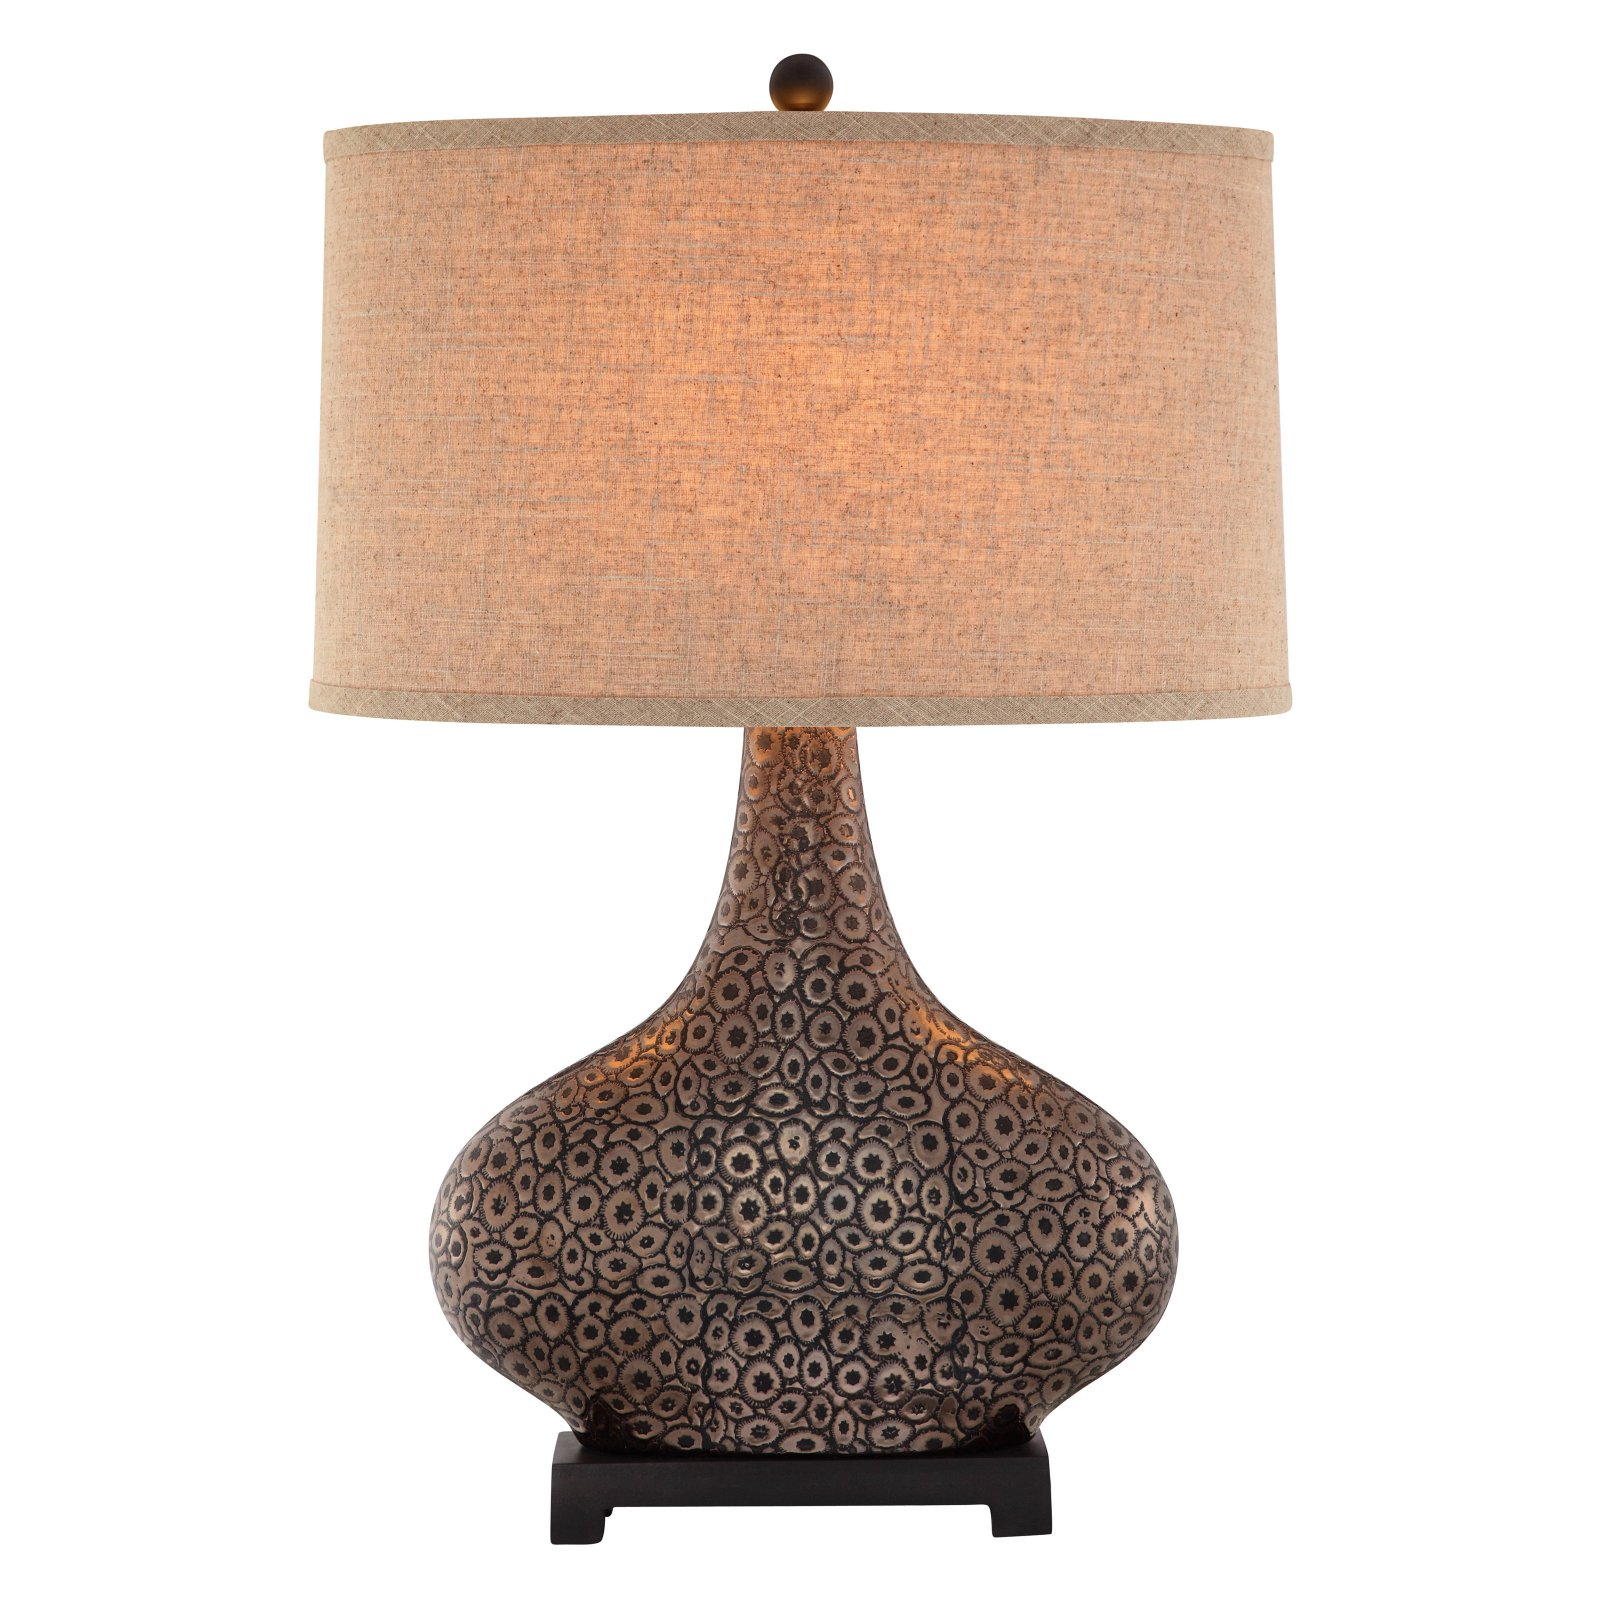 Cresswell Lighting 19089 001 3 Way Switch Table Lamp Walmart Com